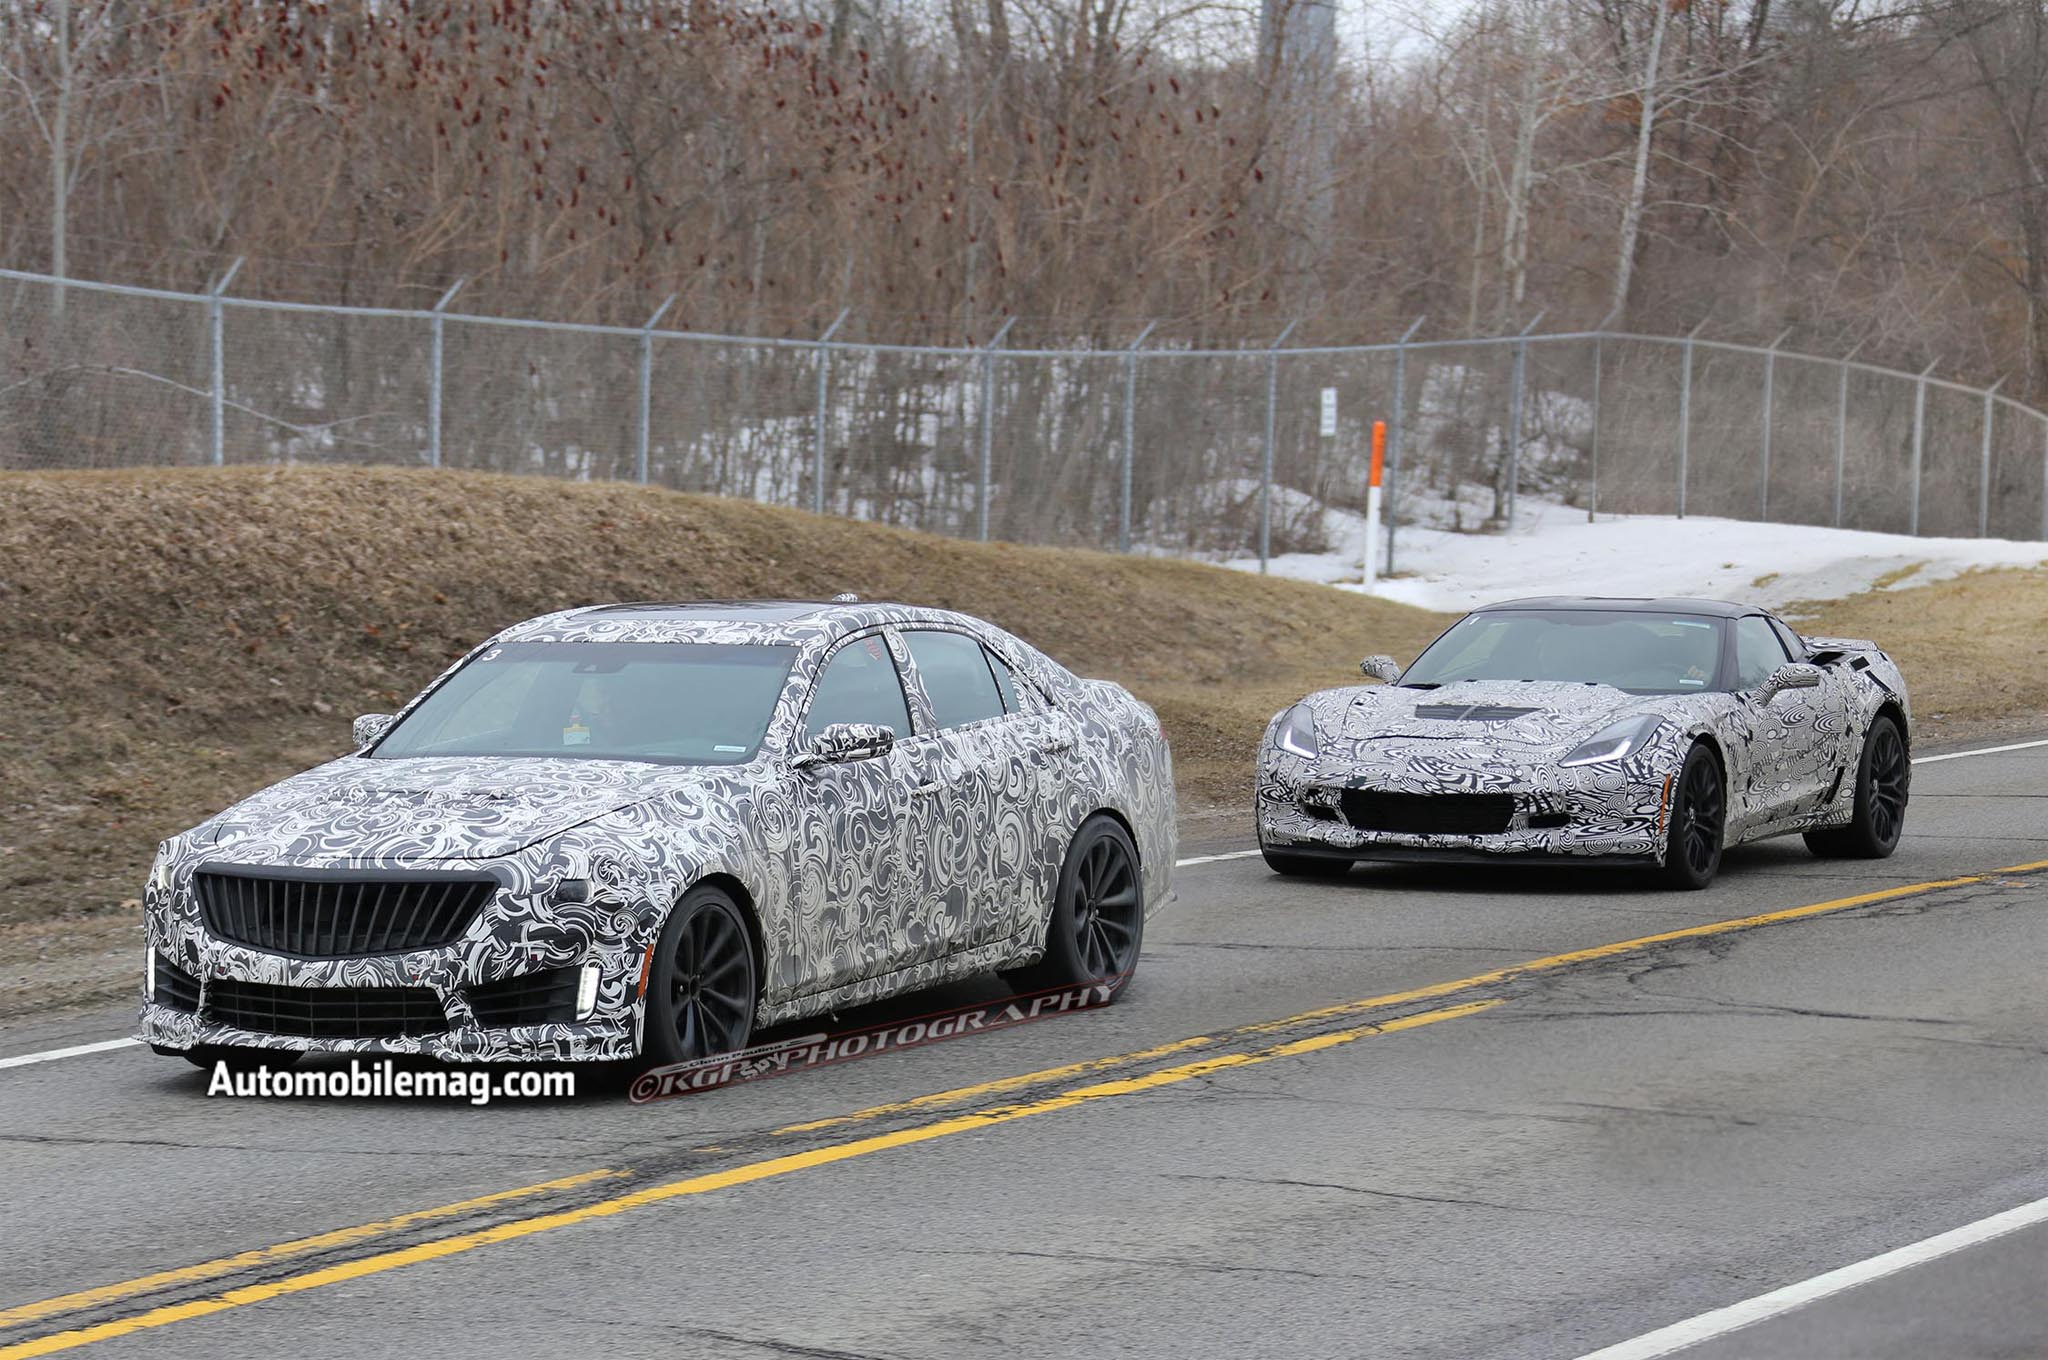 2015 Cadillac Cts V Spy Shot 21 Front Three Quarter With Z061